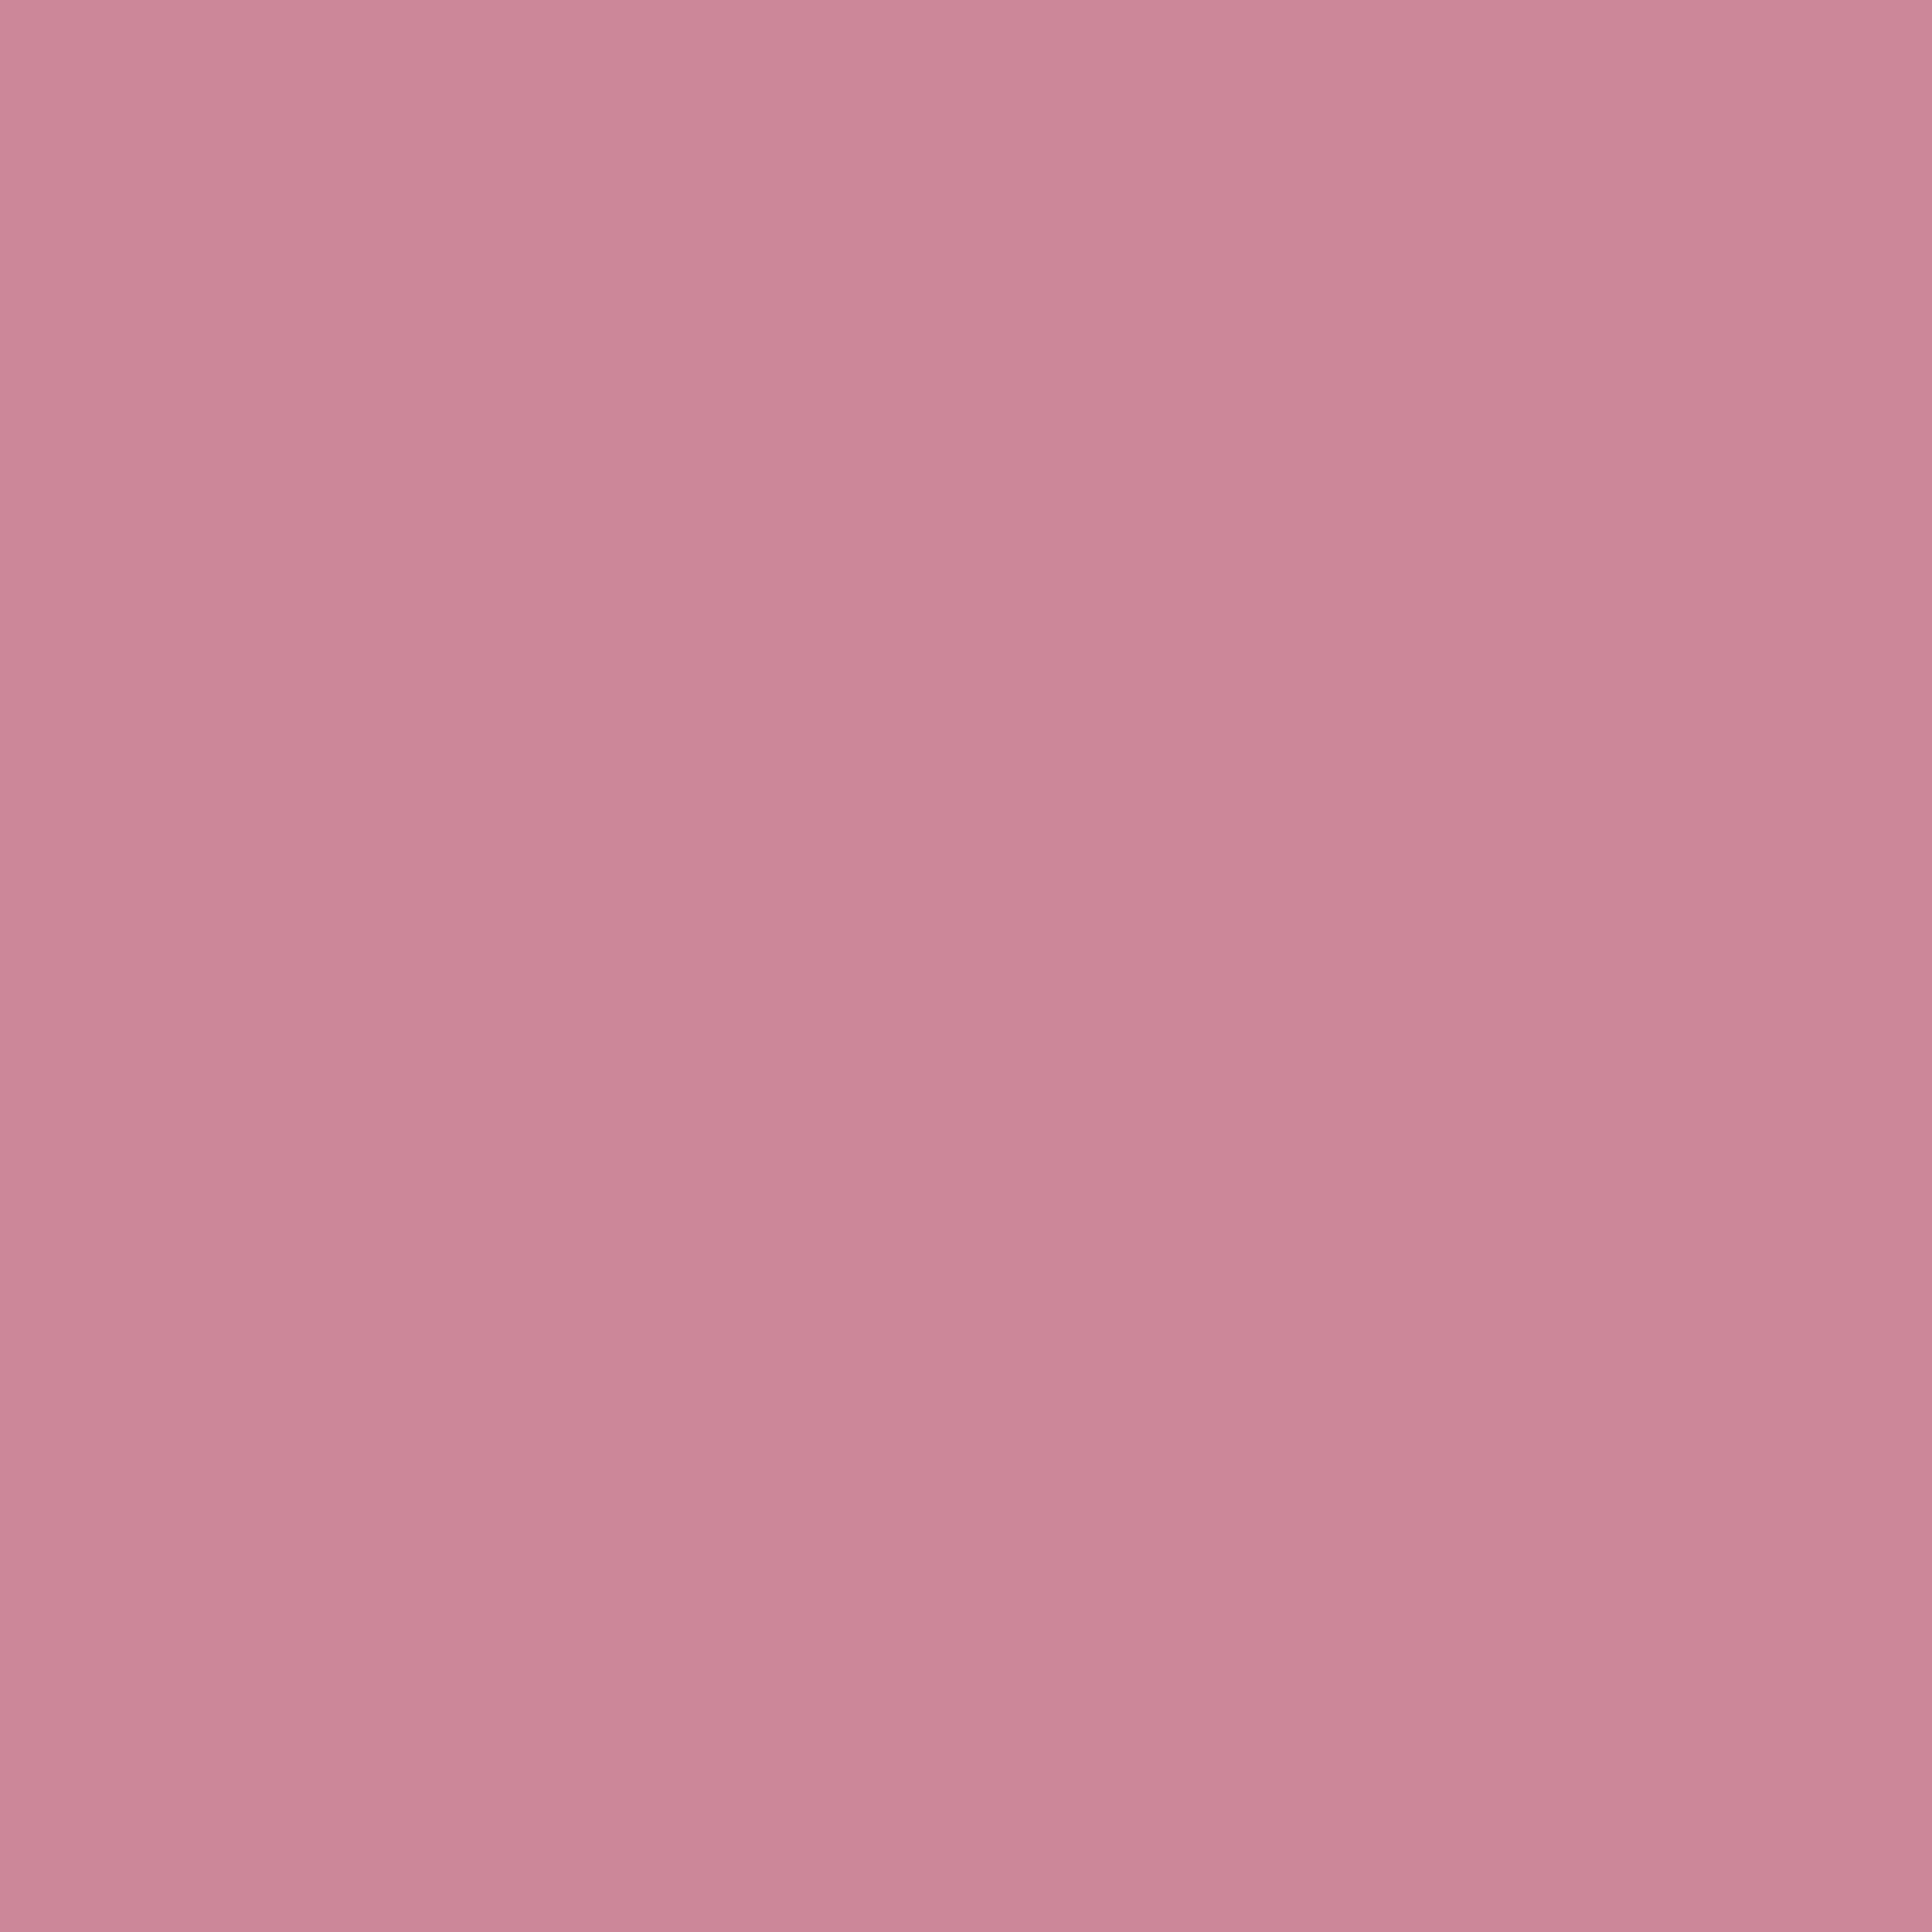 2732x2732 Puce Solid Color Background